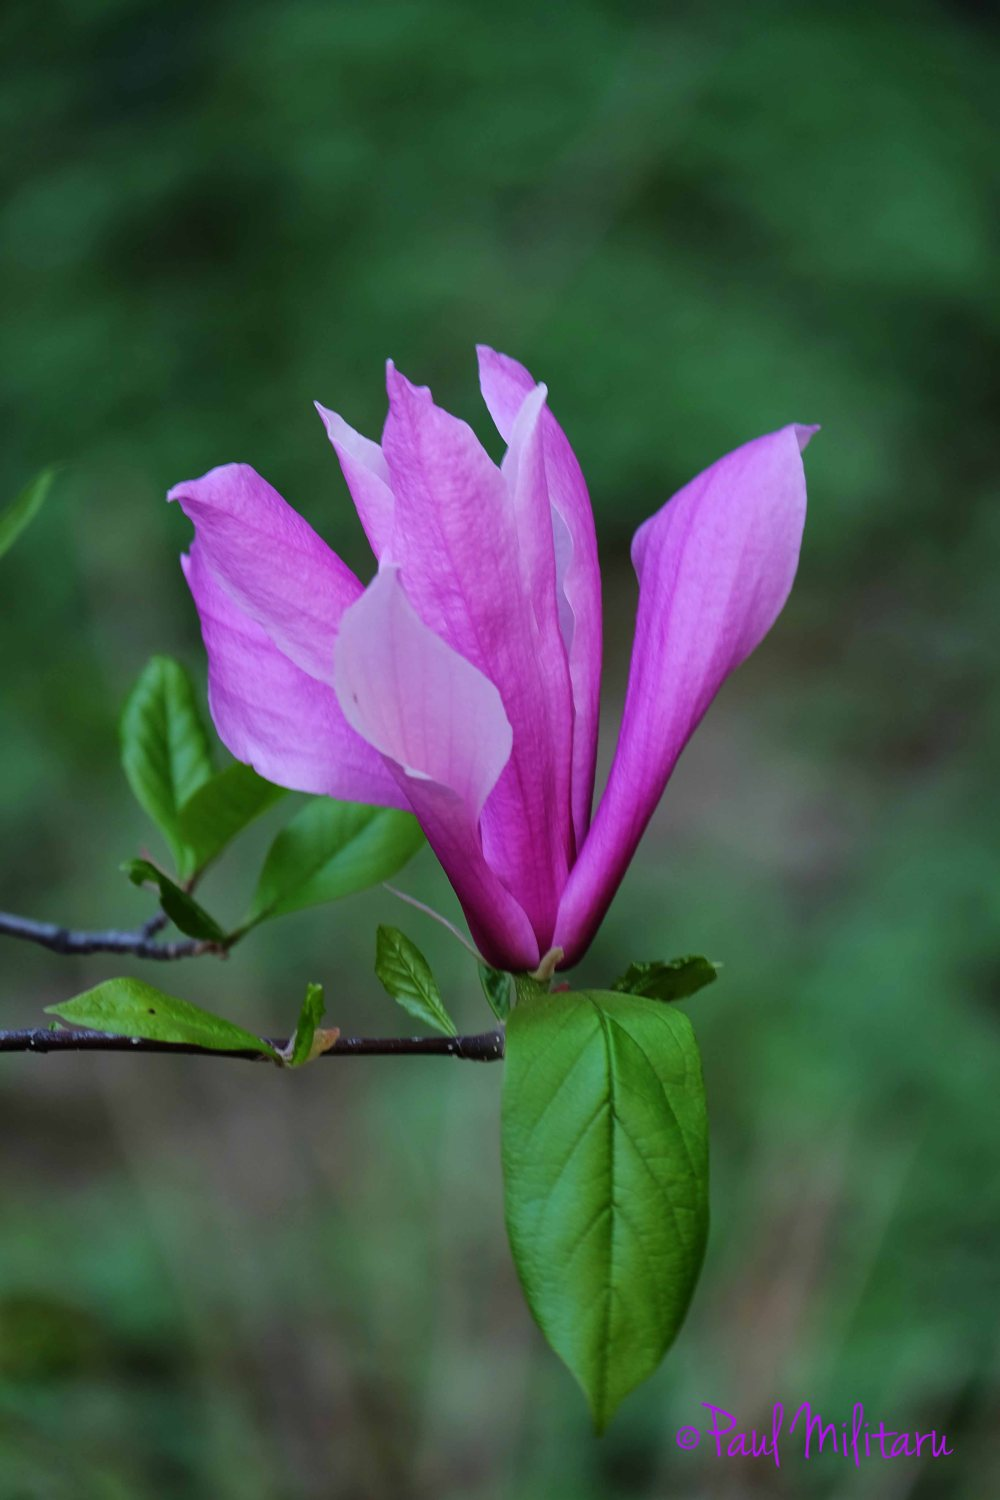 purple magnolia on a green background